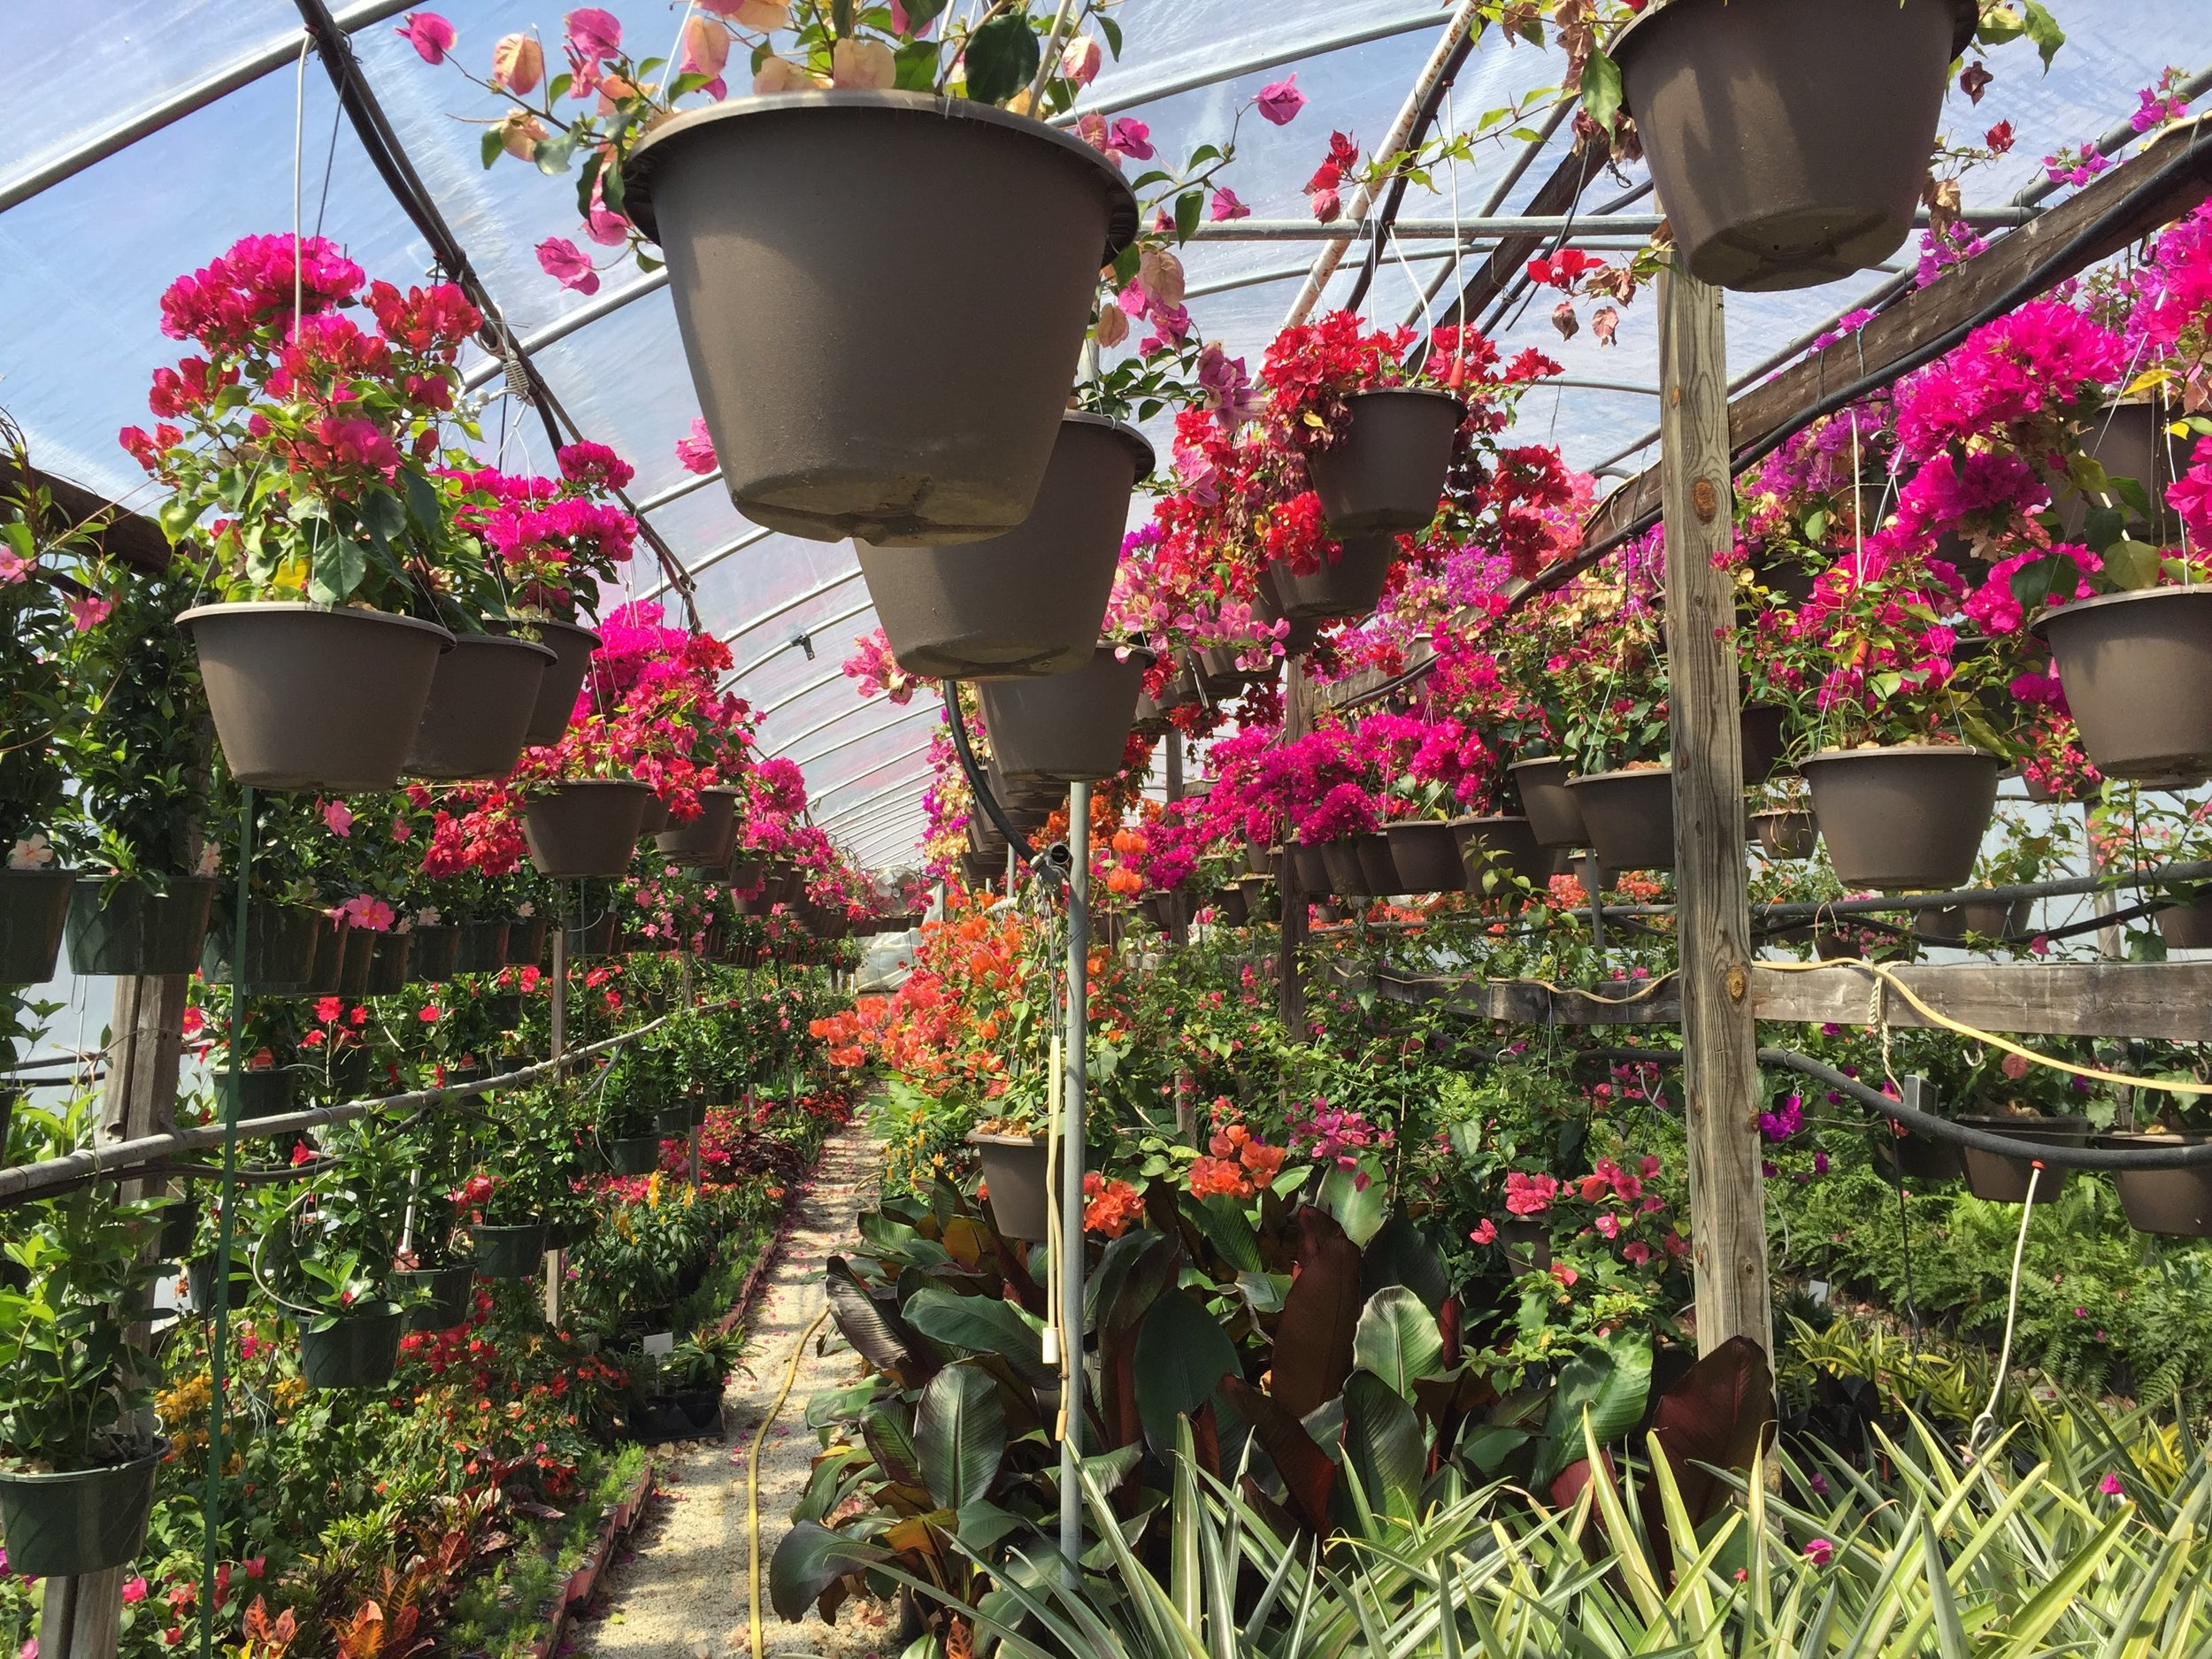 My new happy place: Gunter's Greenhouse in Durham, NC